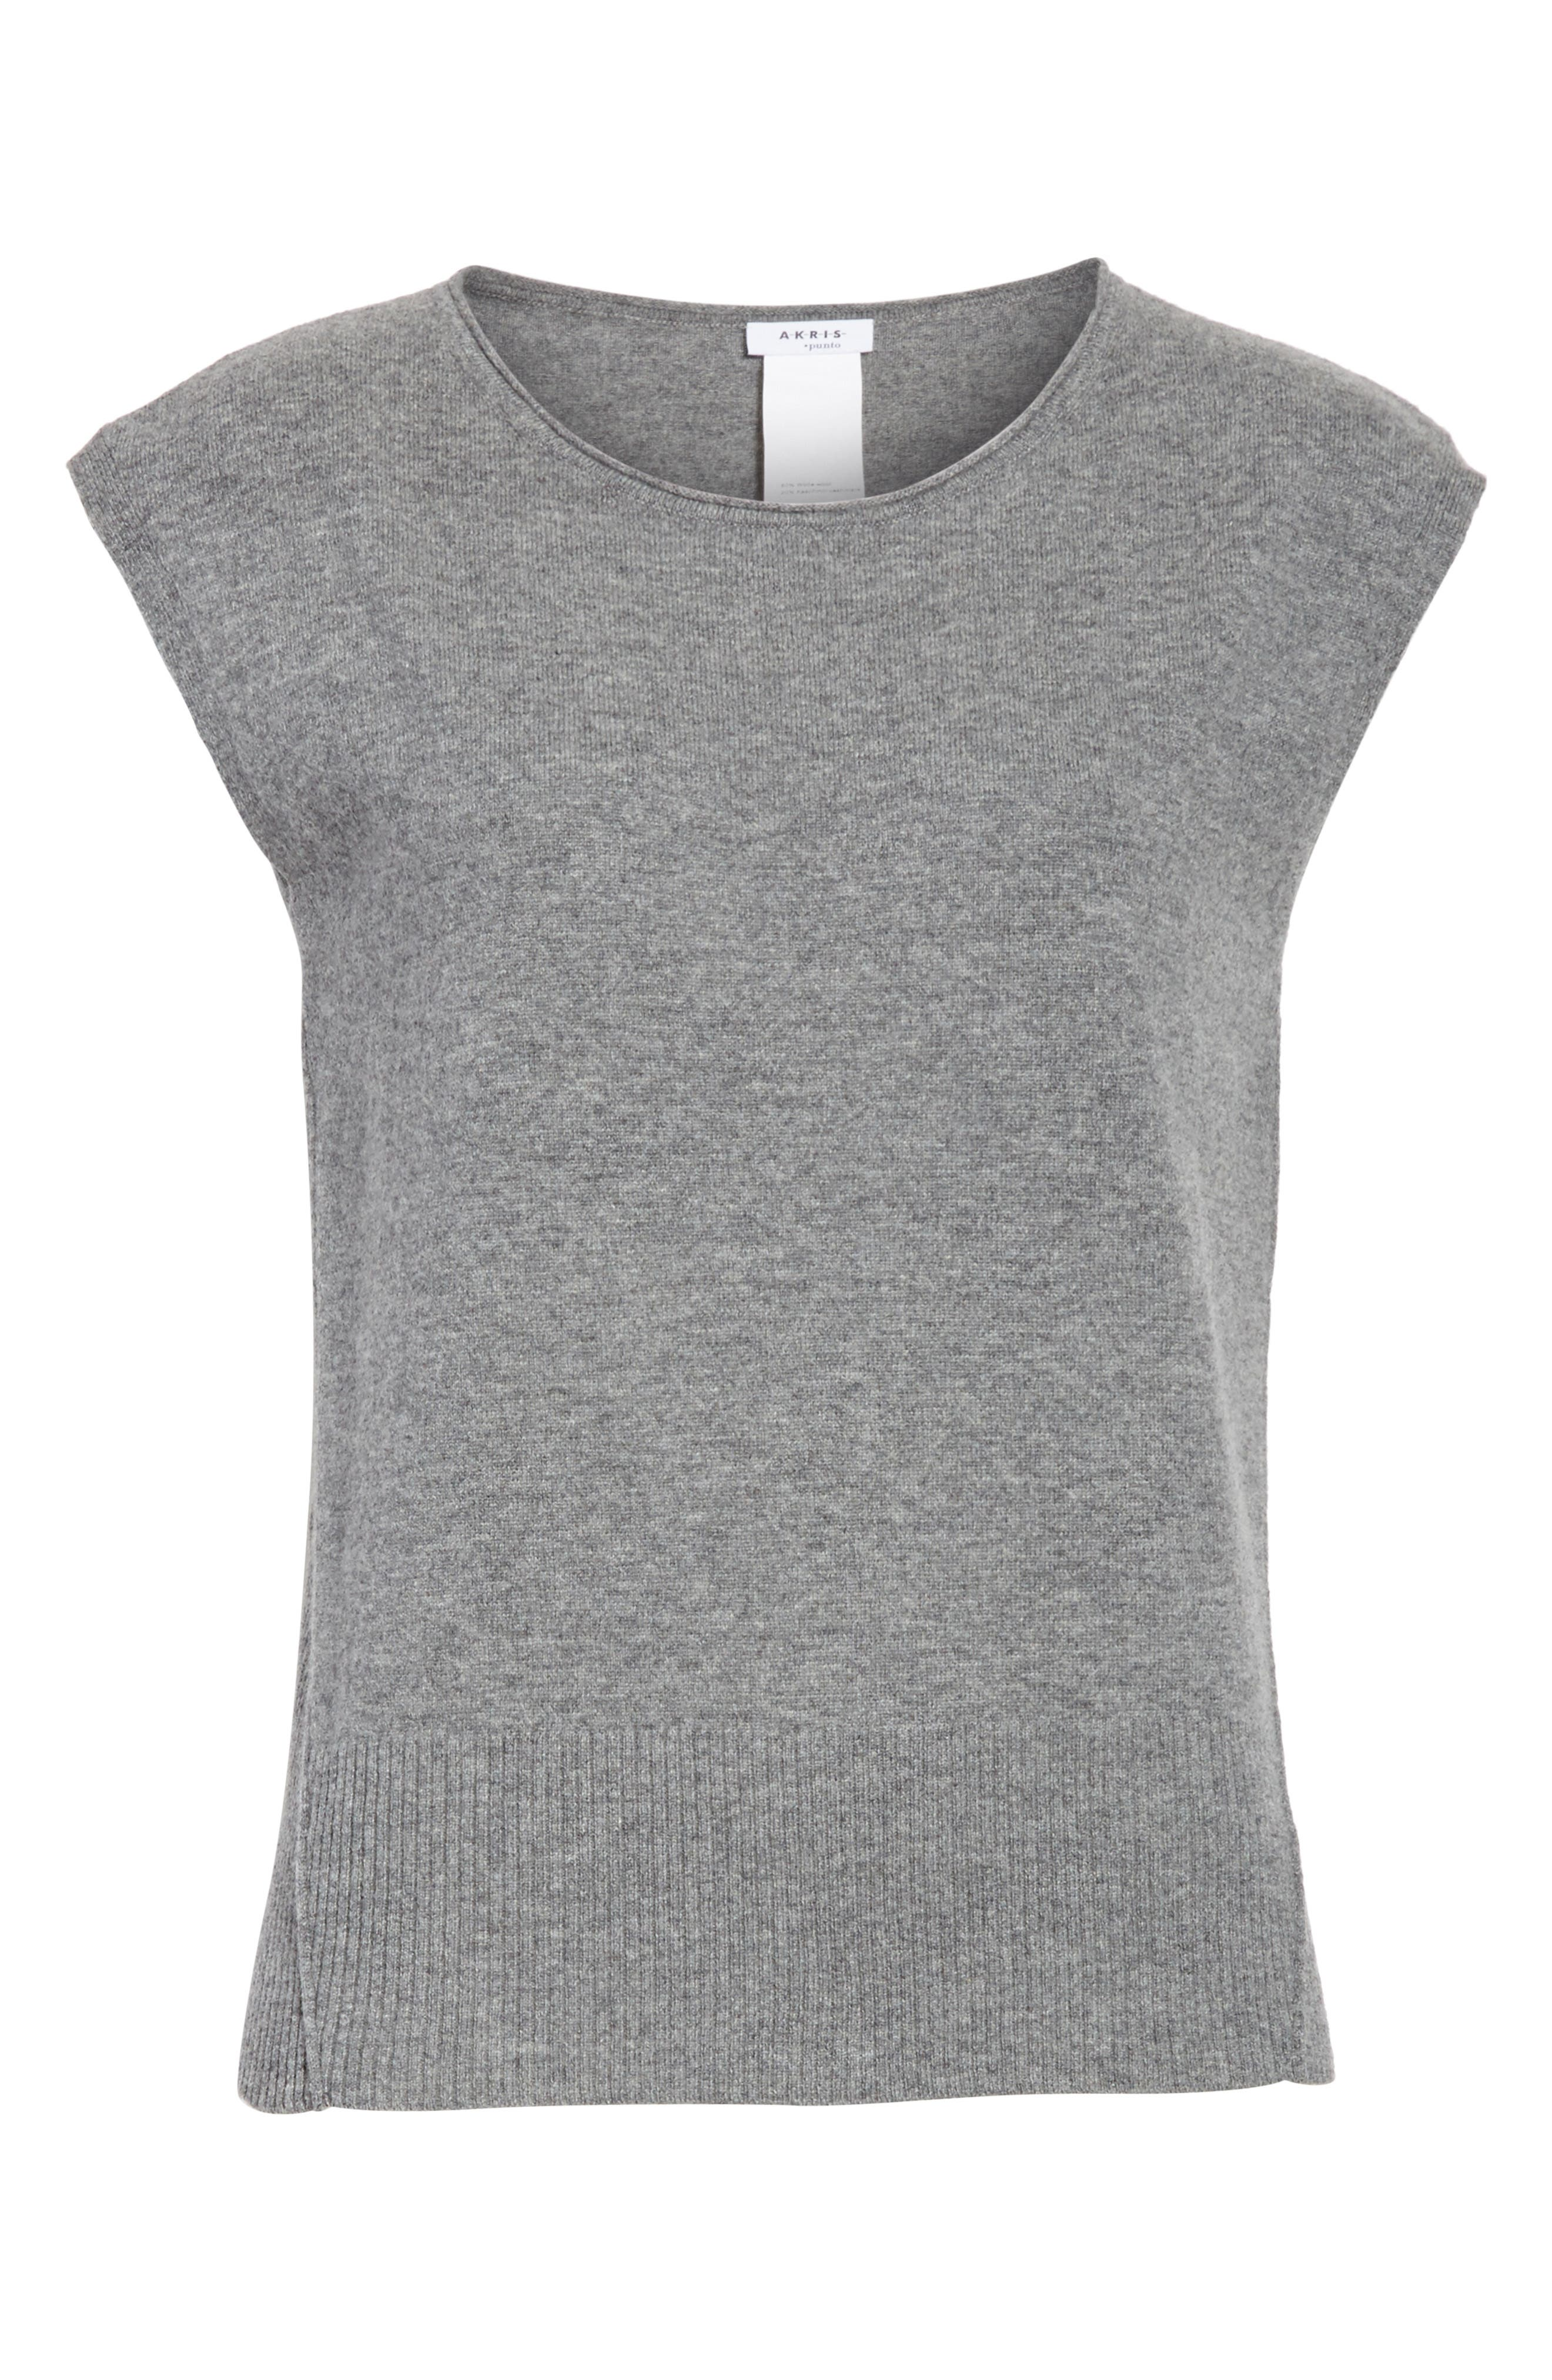 Wool & Cashmere Knit Top,                             Alternate thumbnail 6, color,                             Stone